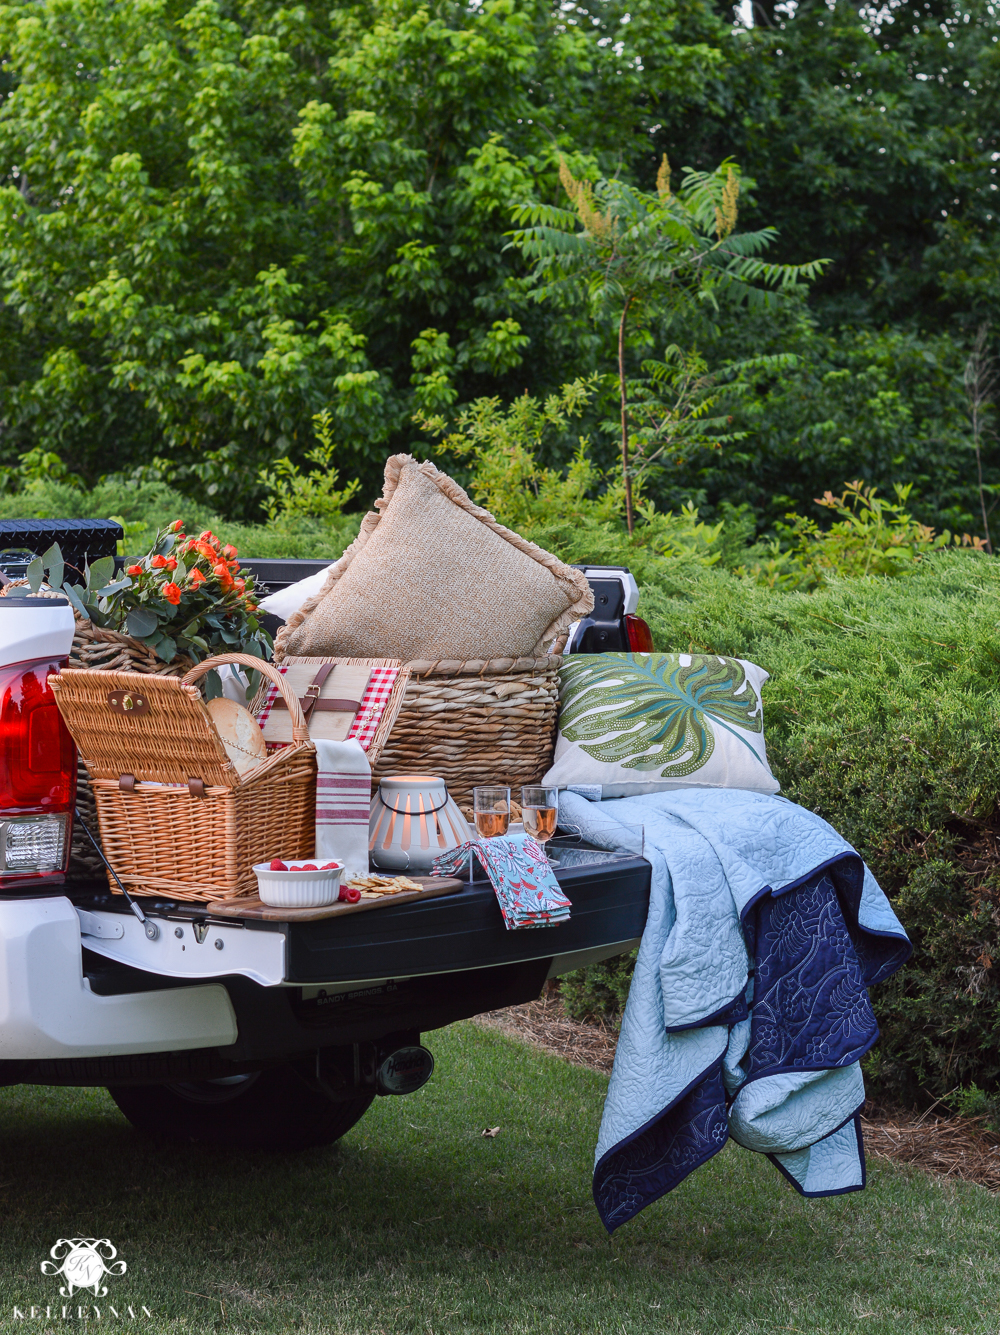 Picnic and Tailgate Ideas and Setup- cute tailgate setup for picnic